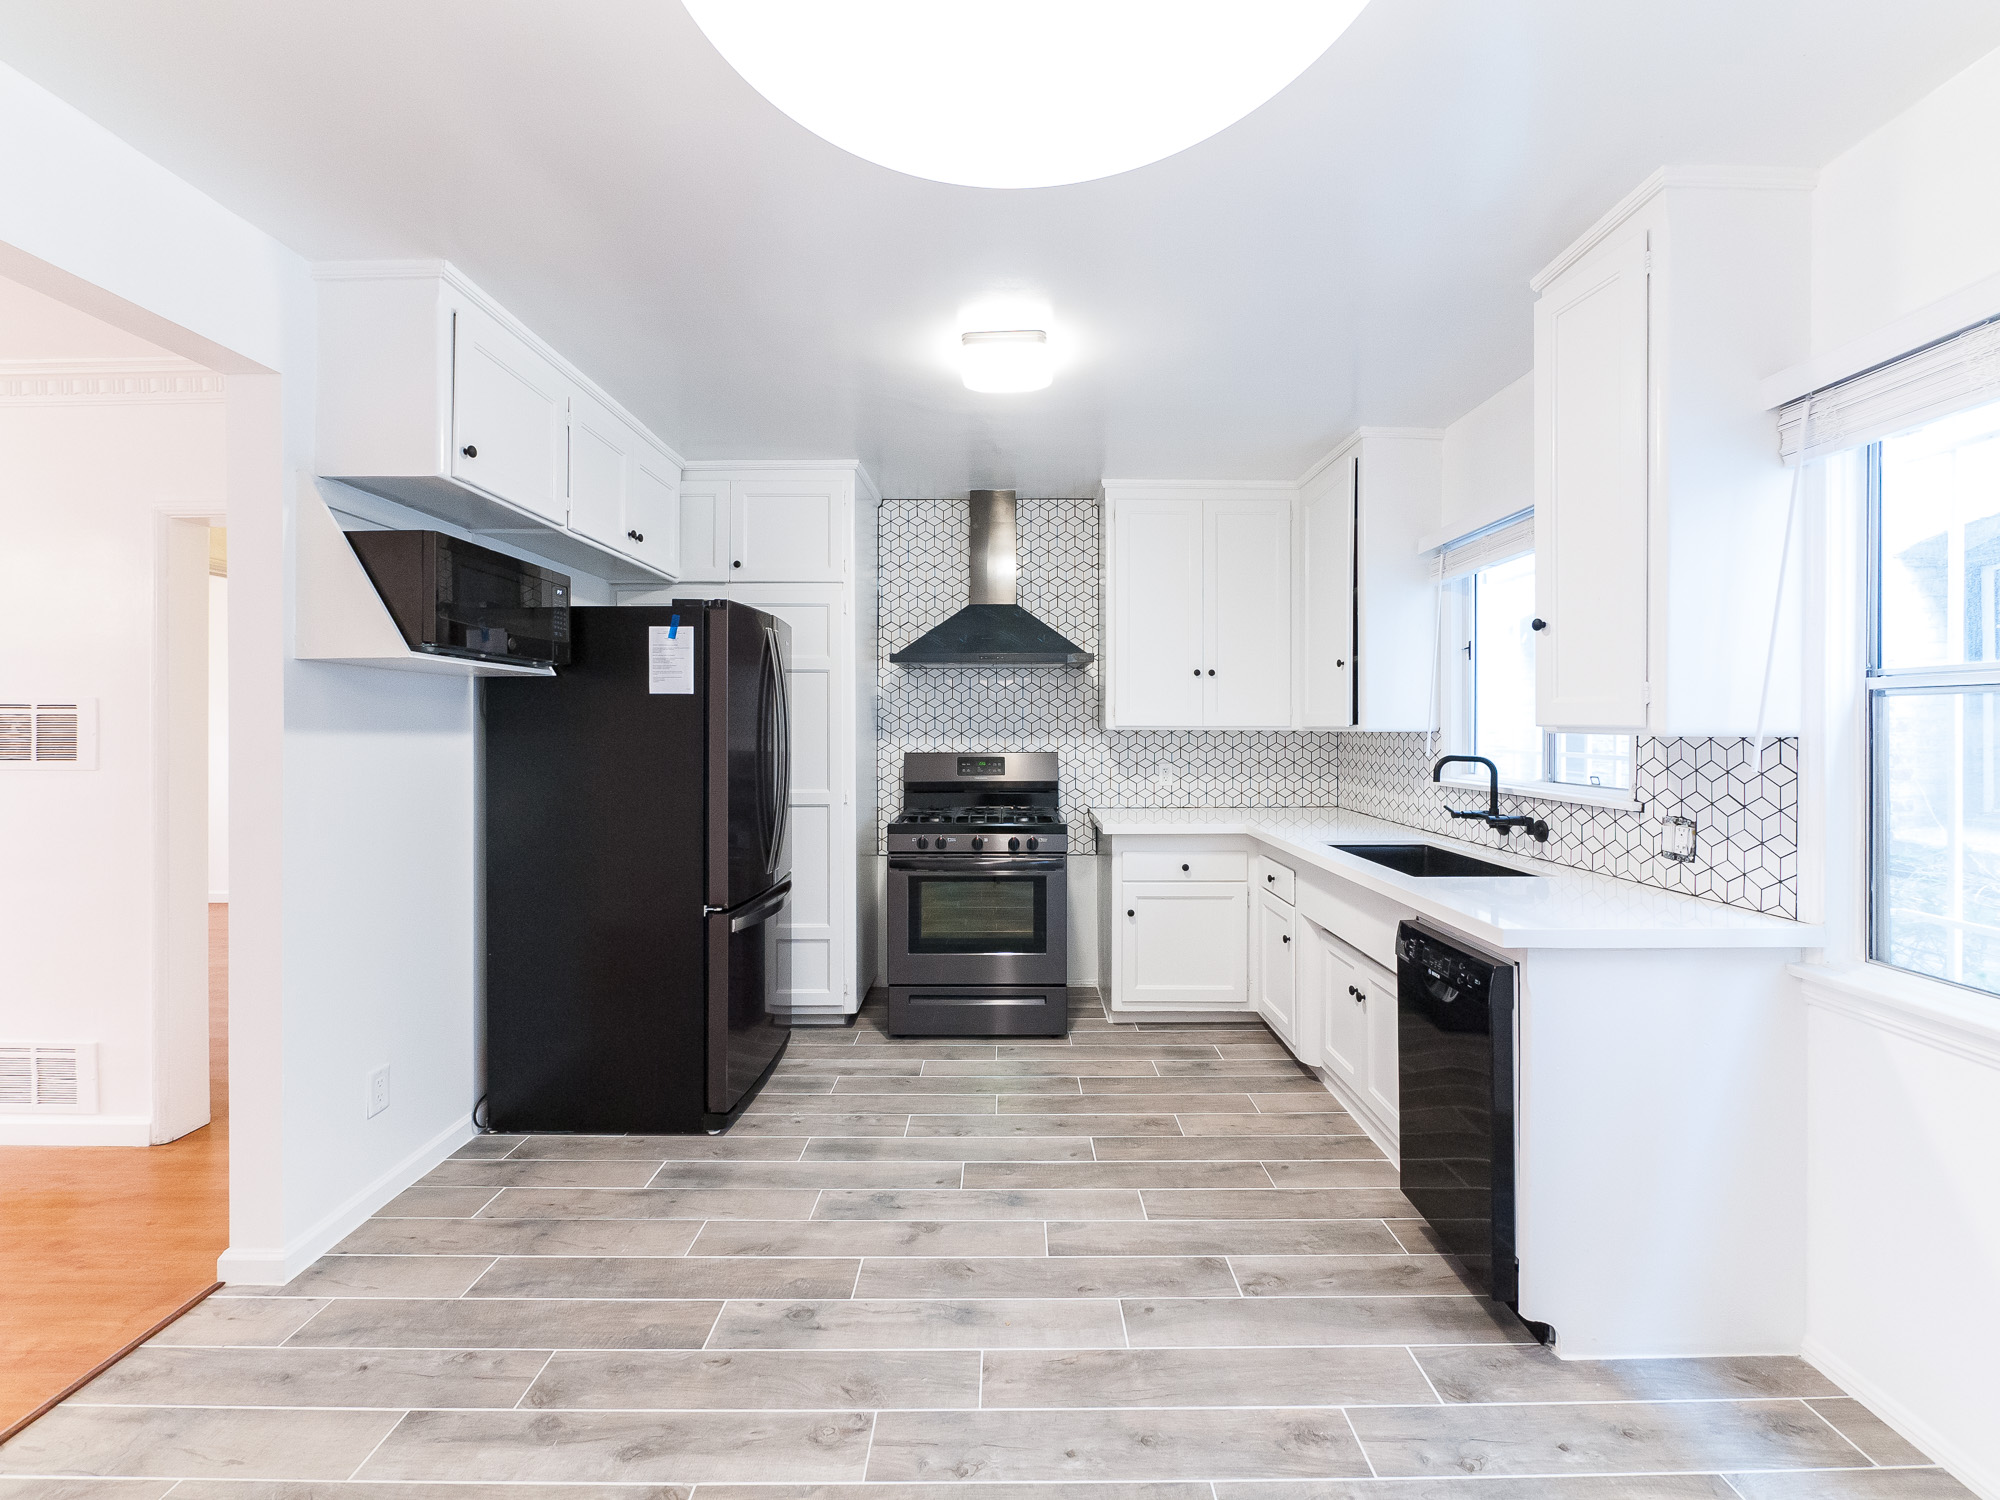 Renovated, Mid Century Cool - A Kitchen to Live For!  Space and Storage Galore! Great Location! Prime KTown Location -Larchmont Adjacent